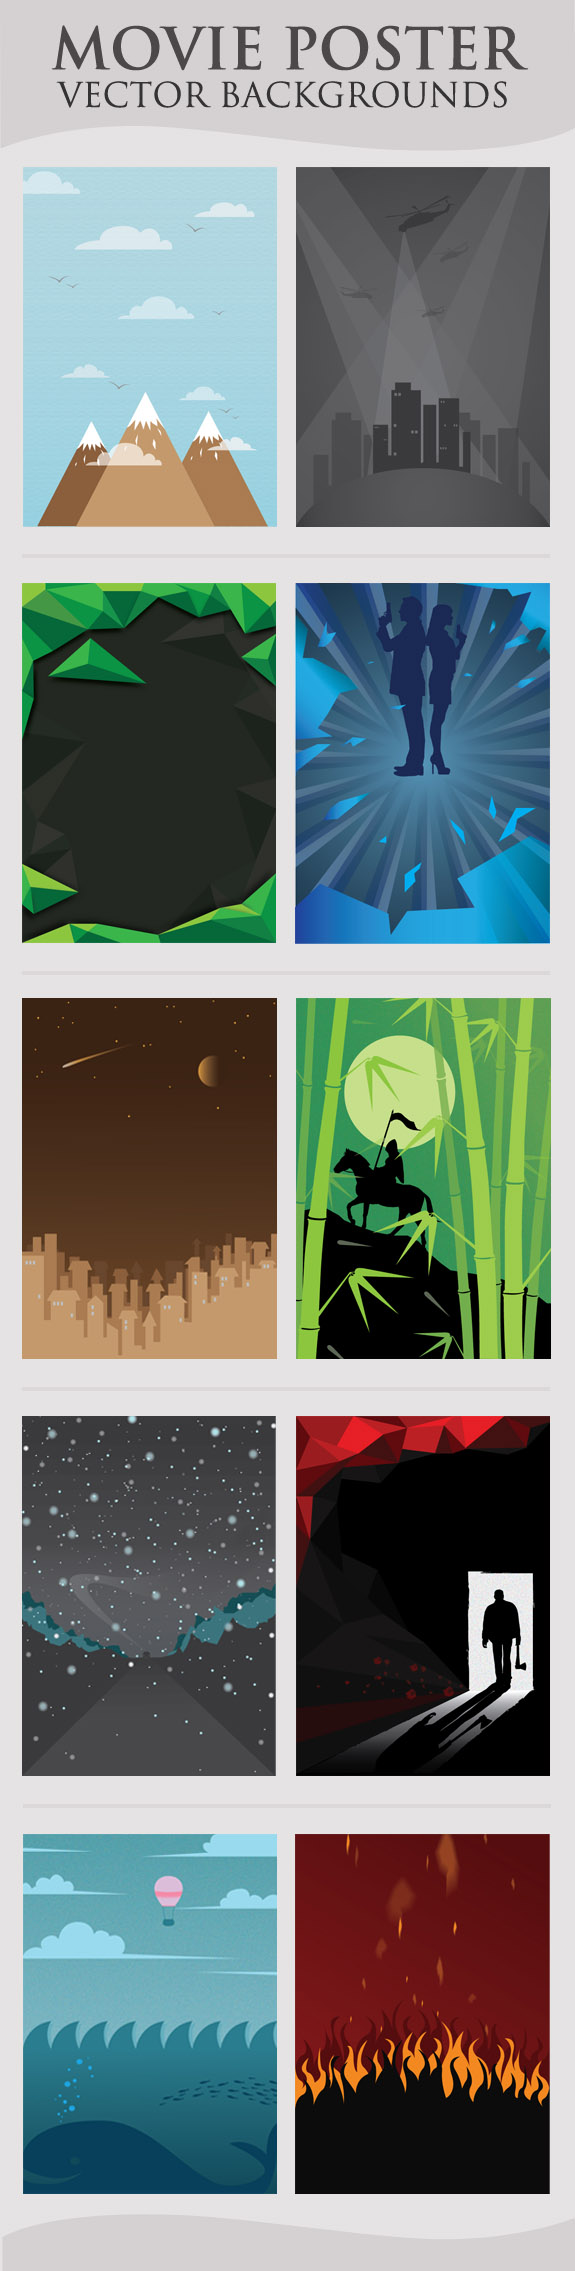 Movie Poster Vector Backgrounds